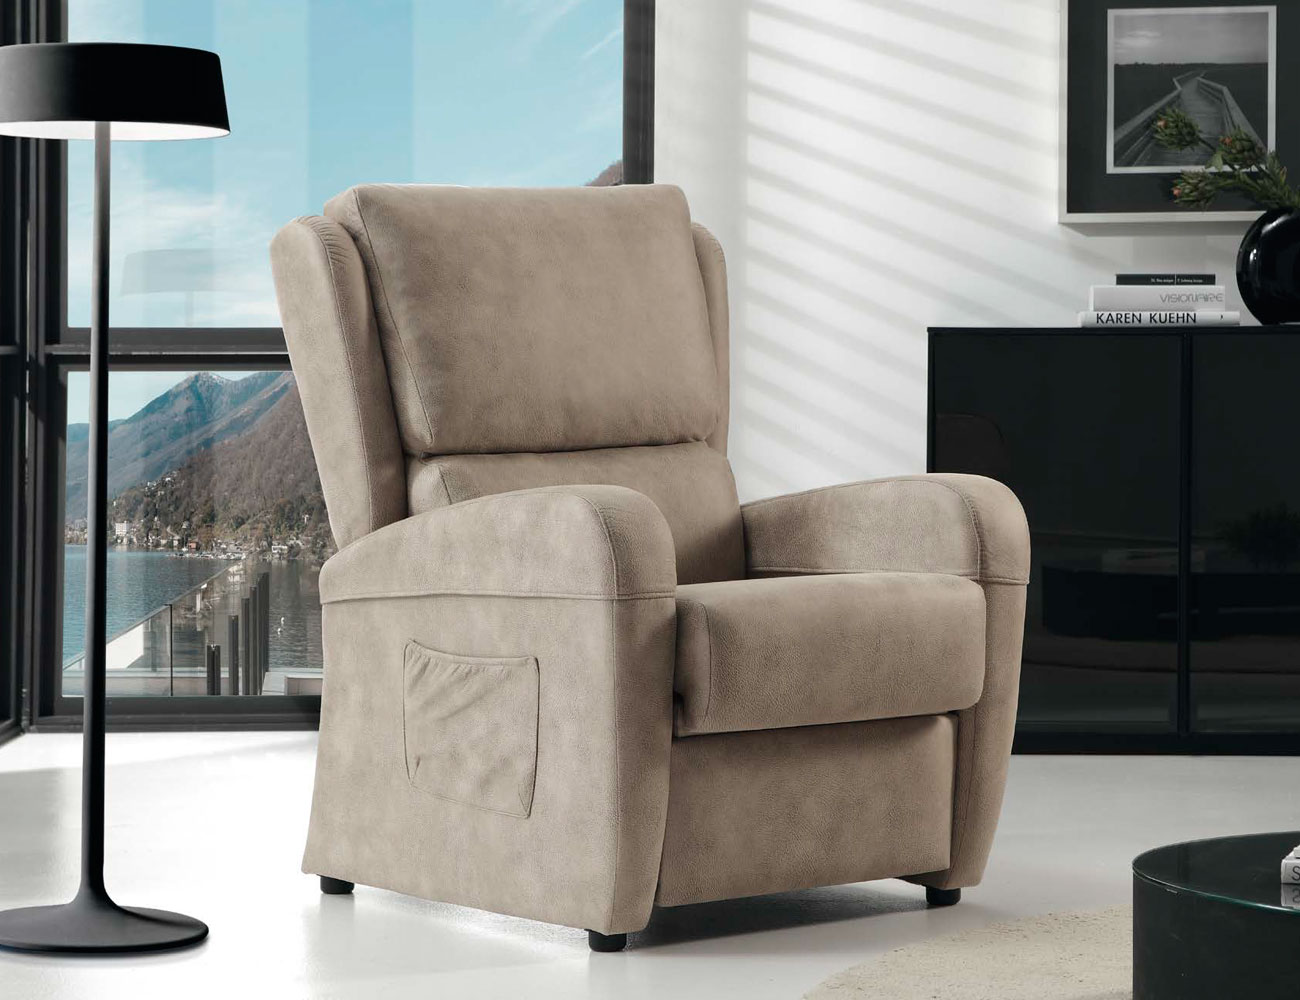 Sillon relax manual jana2